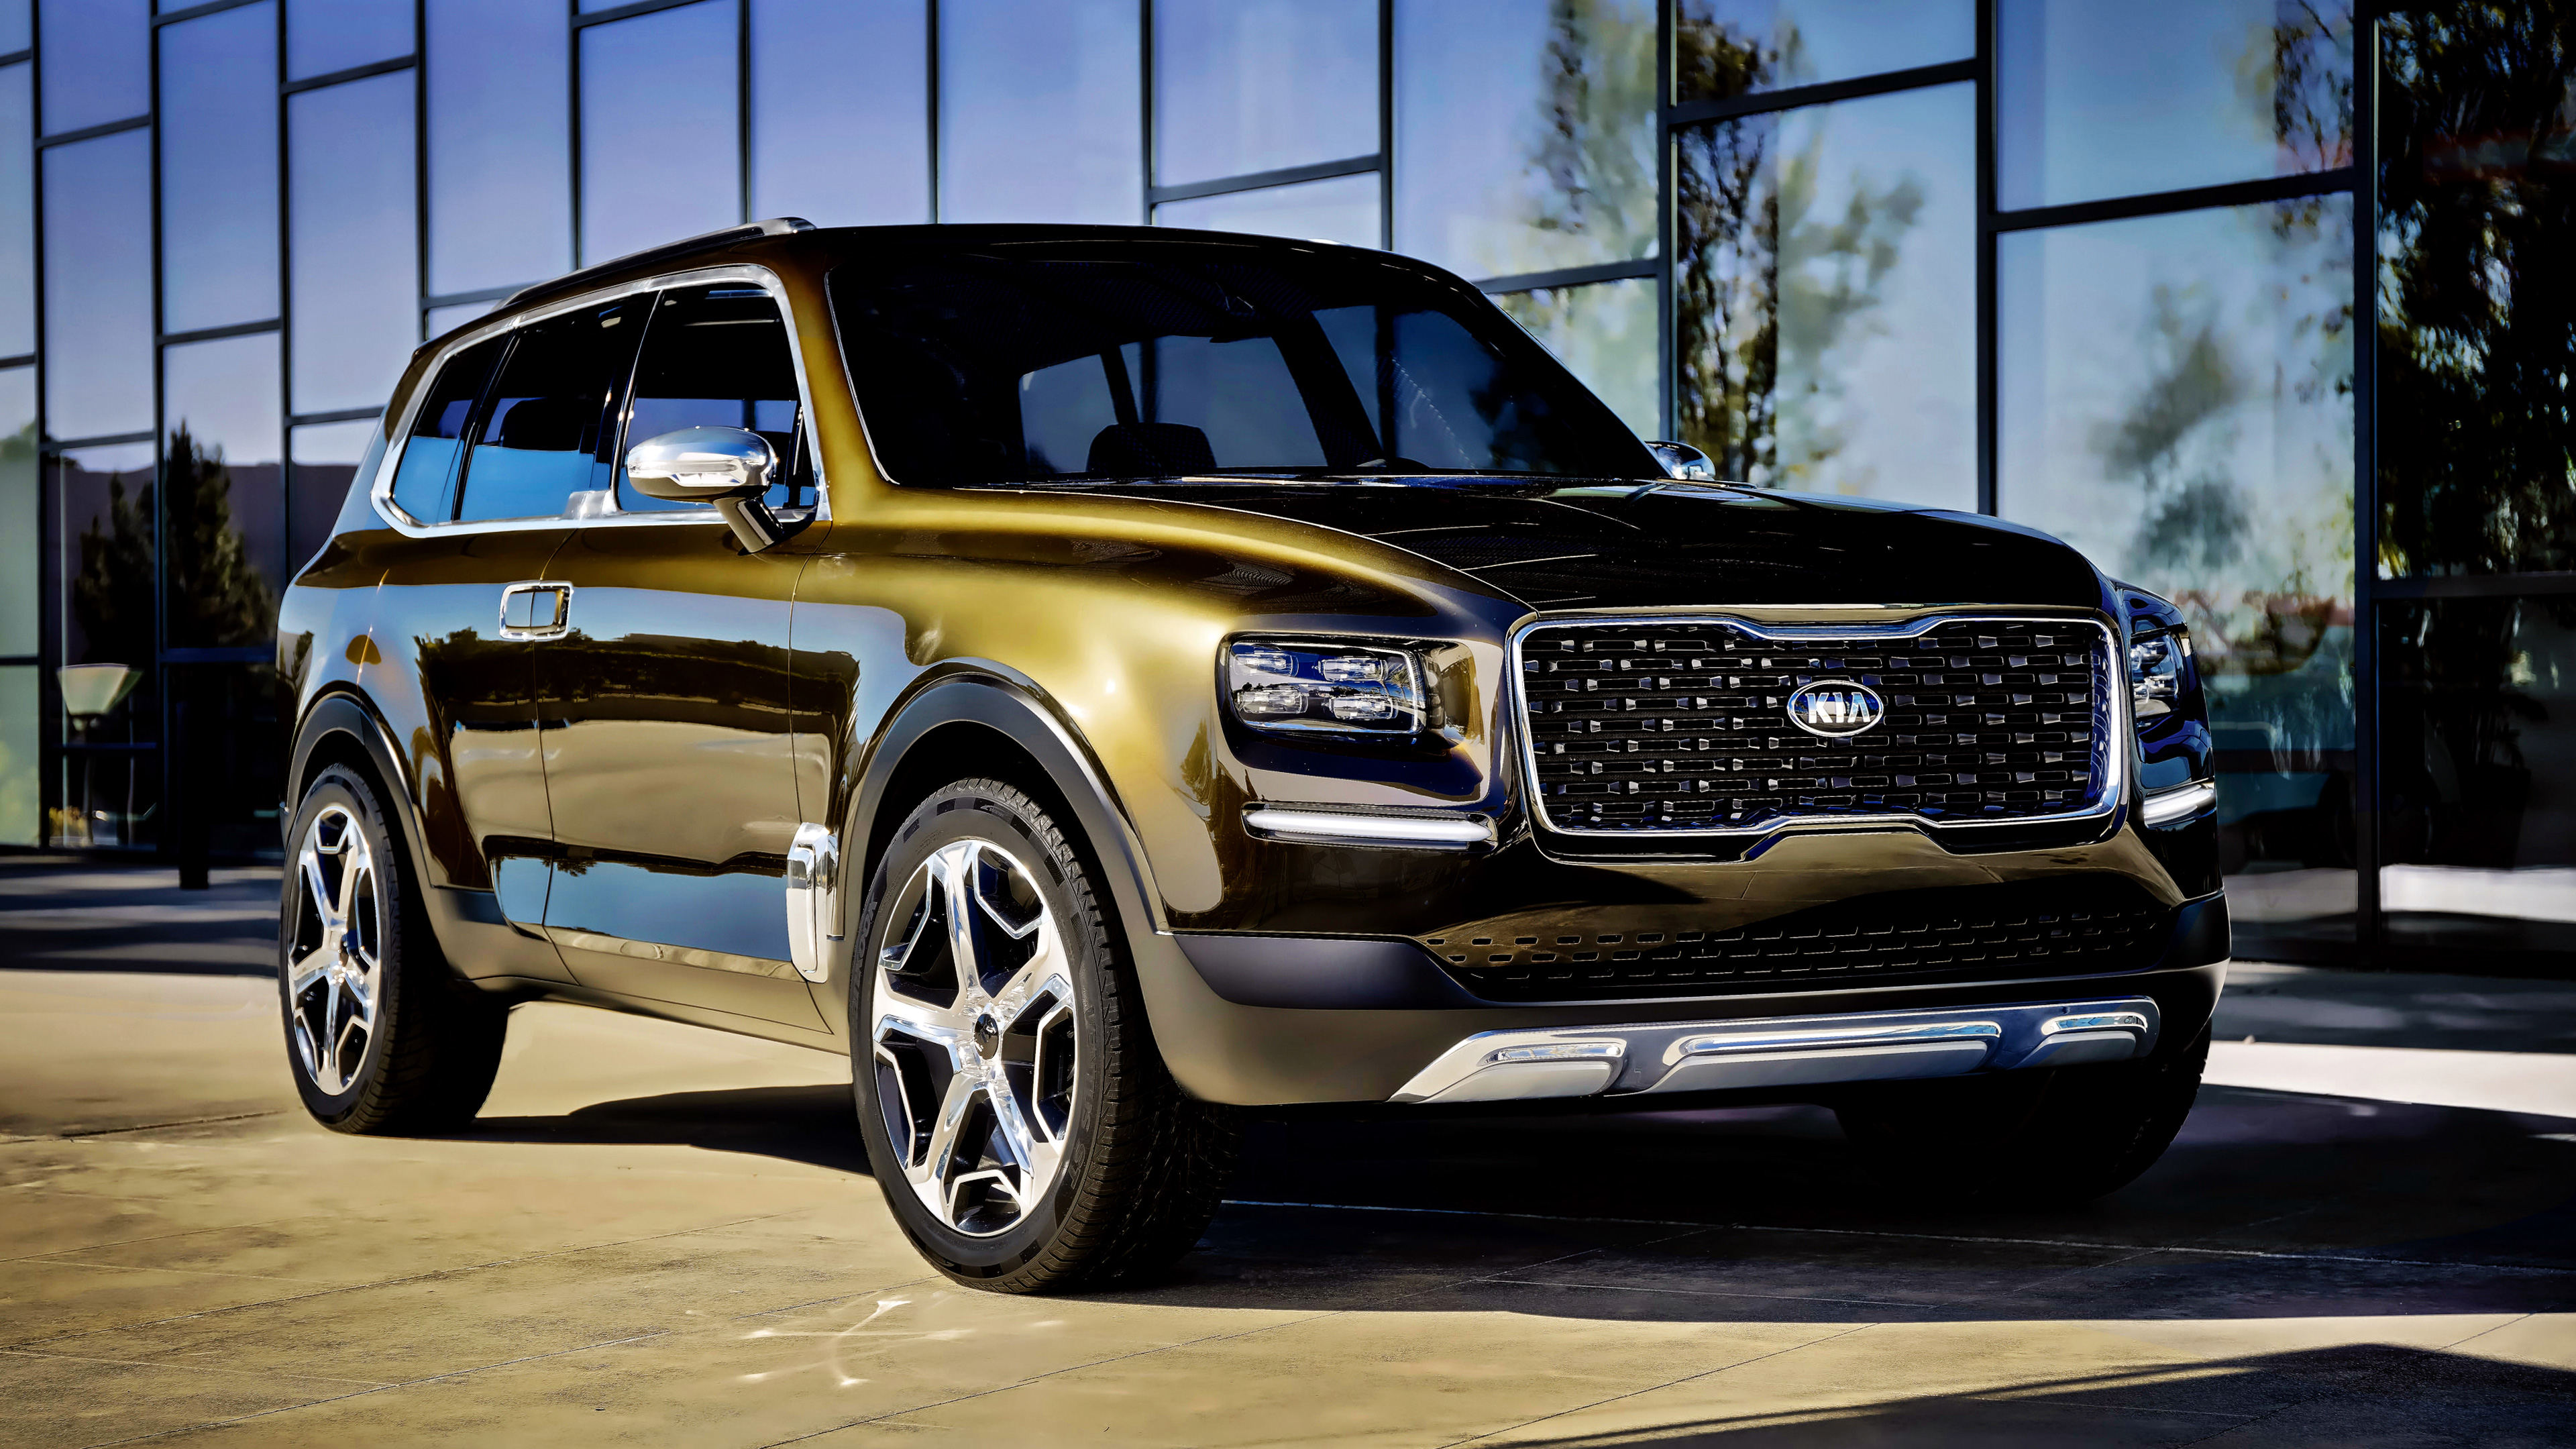 2017 Kia Telluride Concept 4K Wallpaper HD Car Wallpapers ID 7068 3840x2160